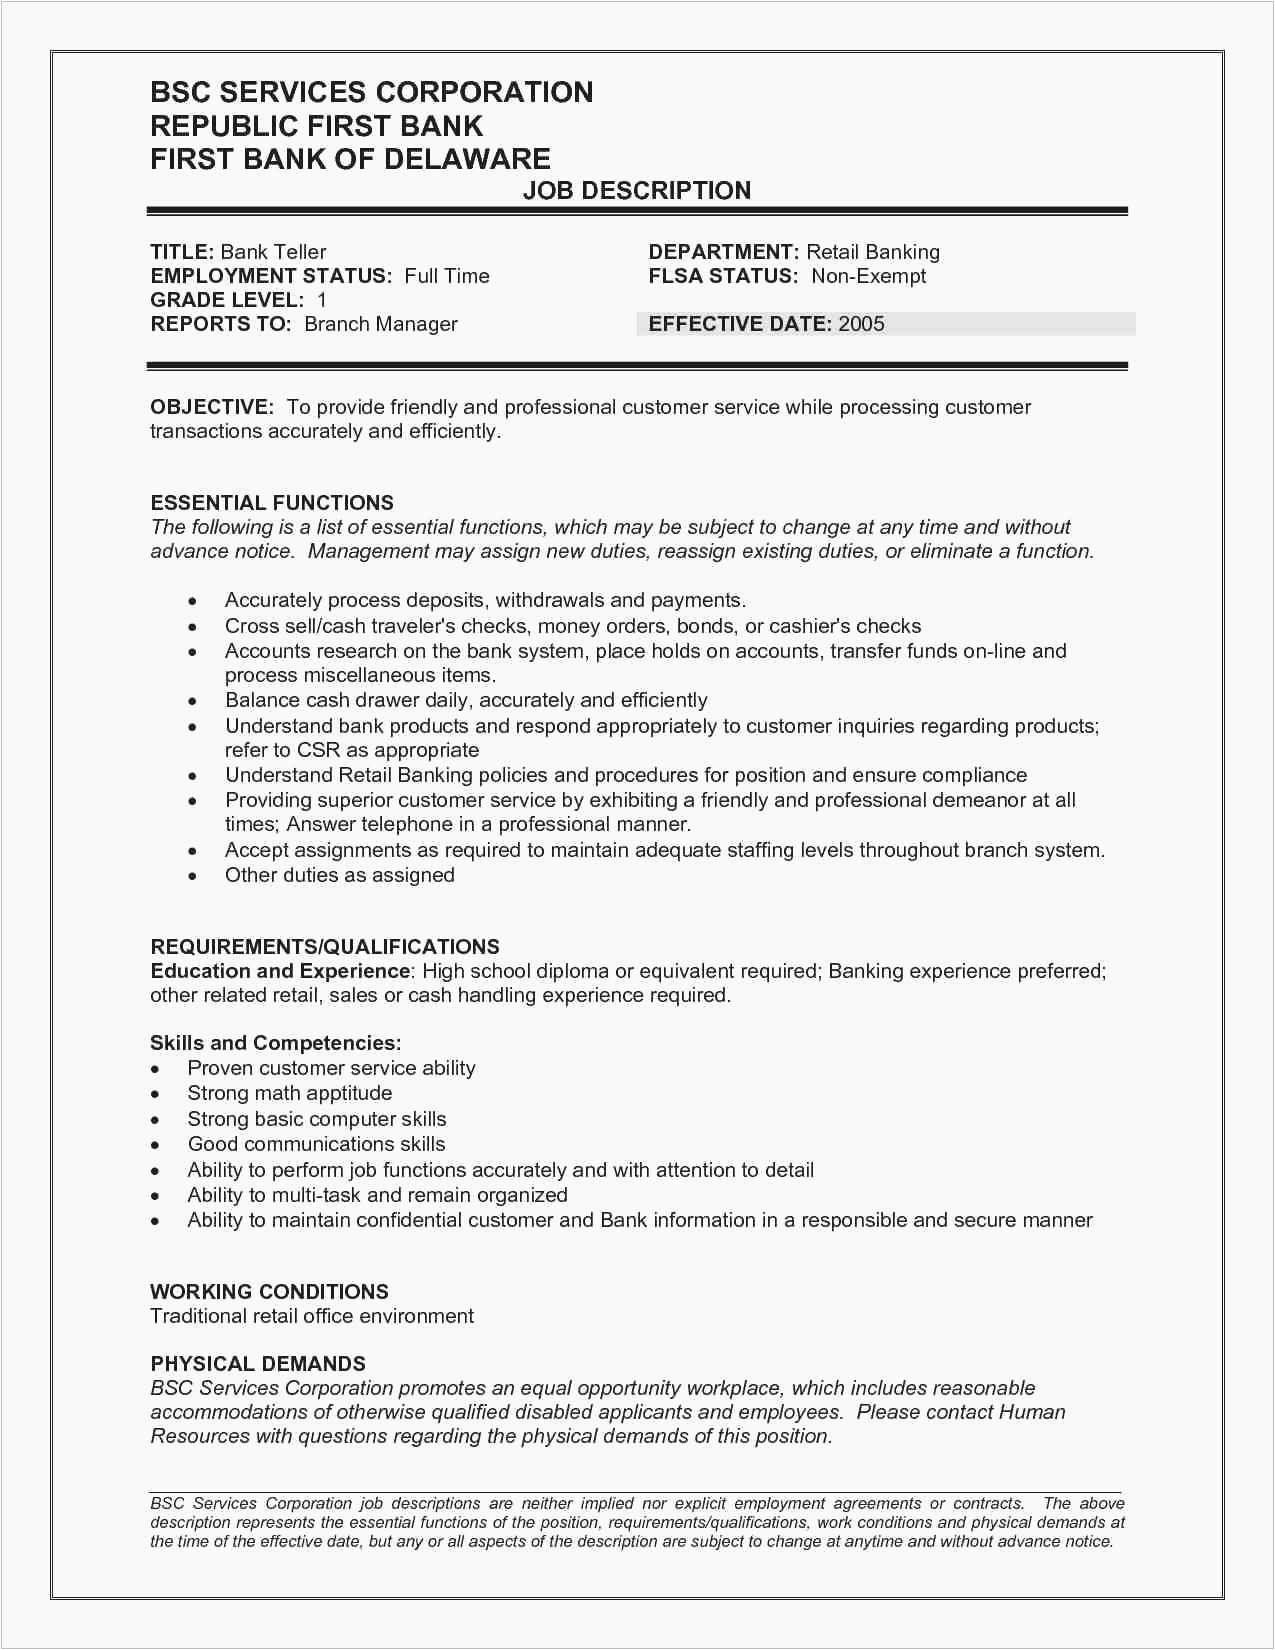 Time Management Skills Resume Unique 23 Inspirational Pics Customer Service Resumes Examples Bank Teller Resume Resume Examples Resume No Experience